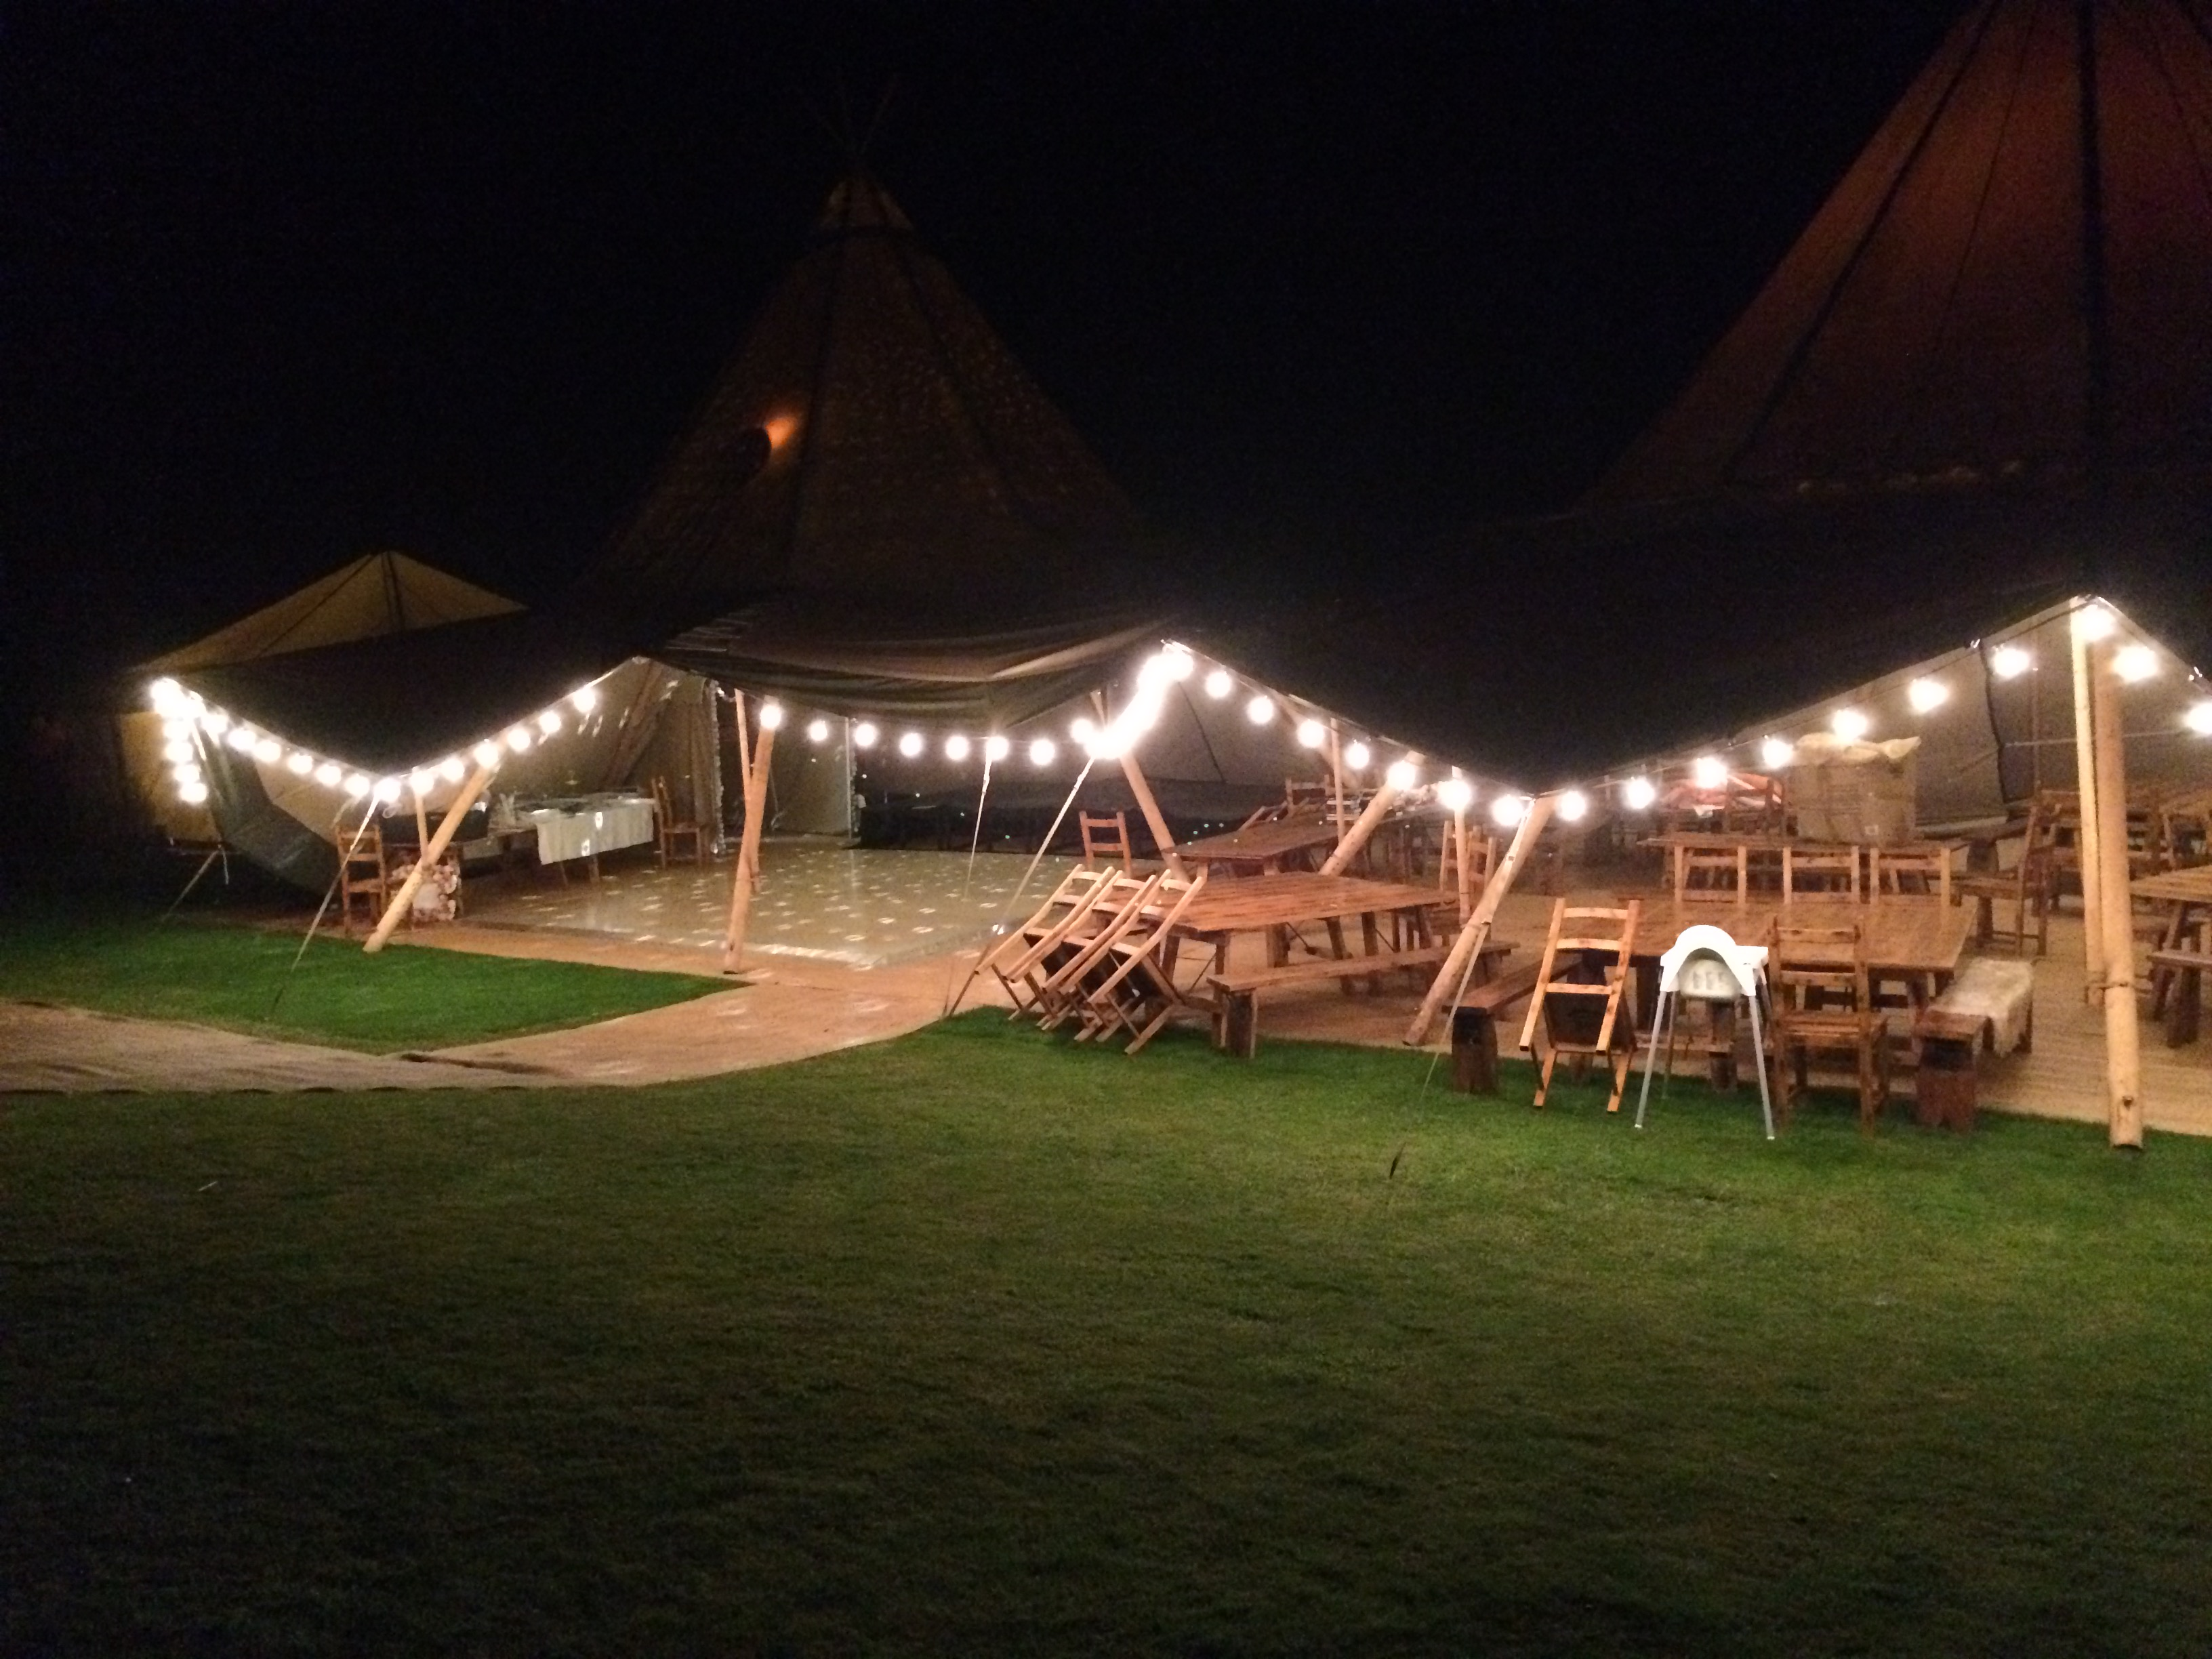 Tipi venue at night